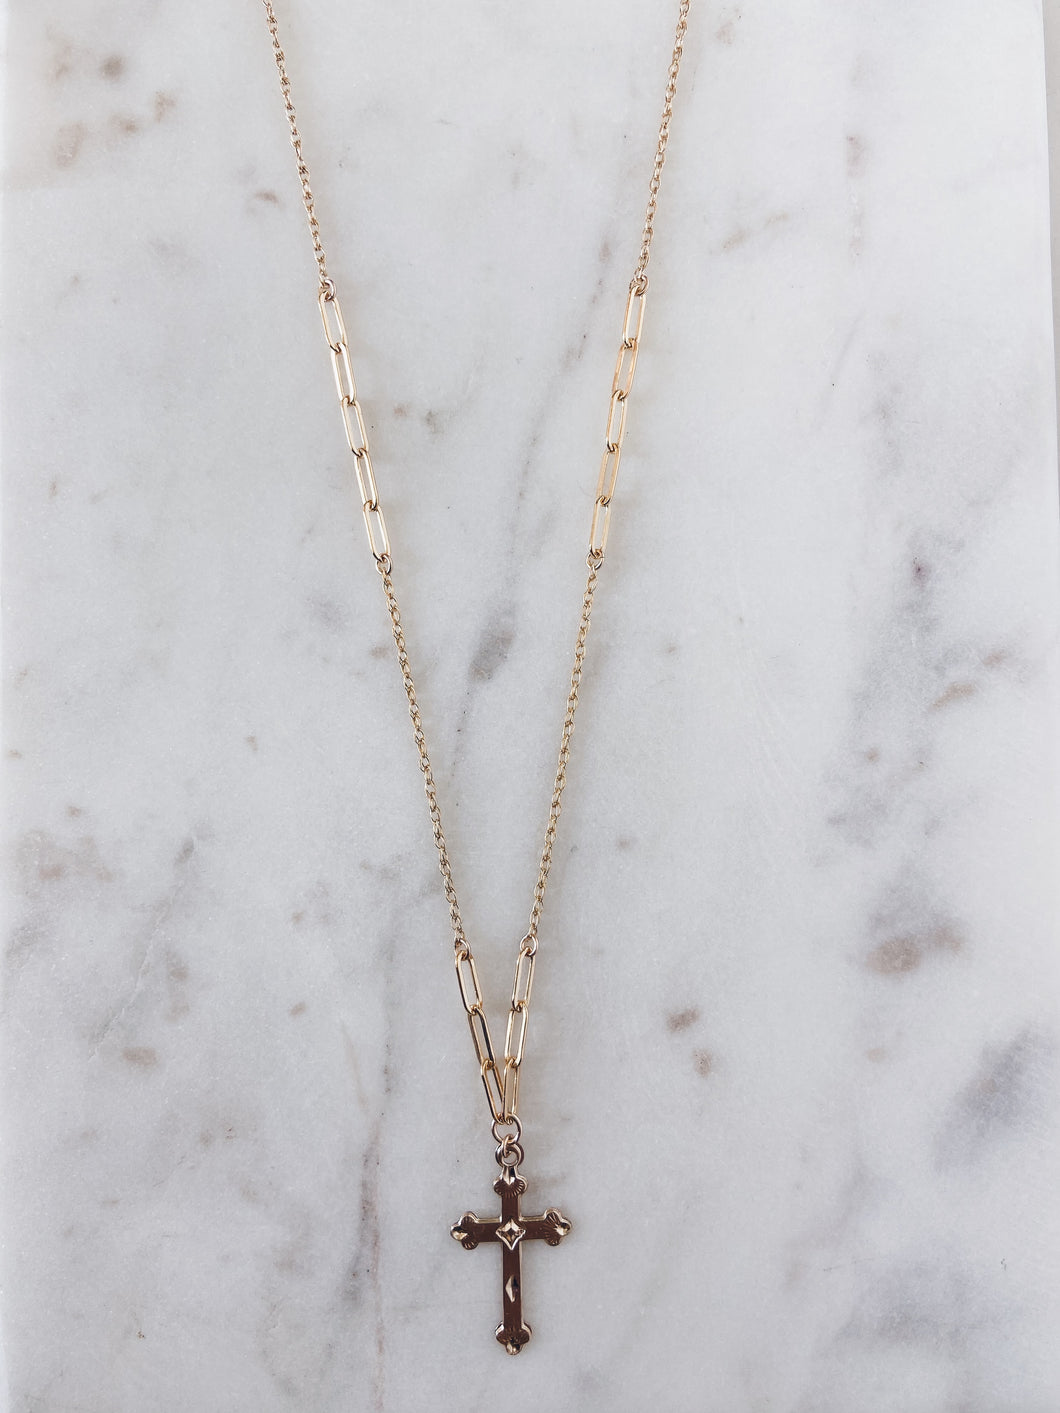 Faithful Necklace 14k Gold Filled Cross & Mixed Chain